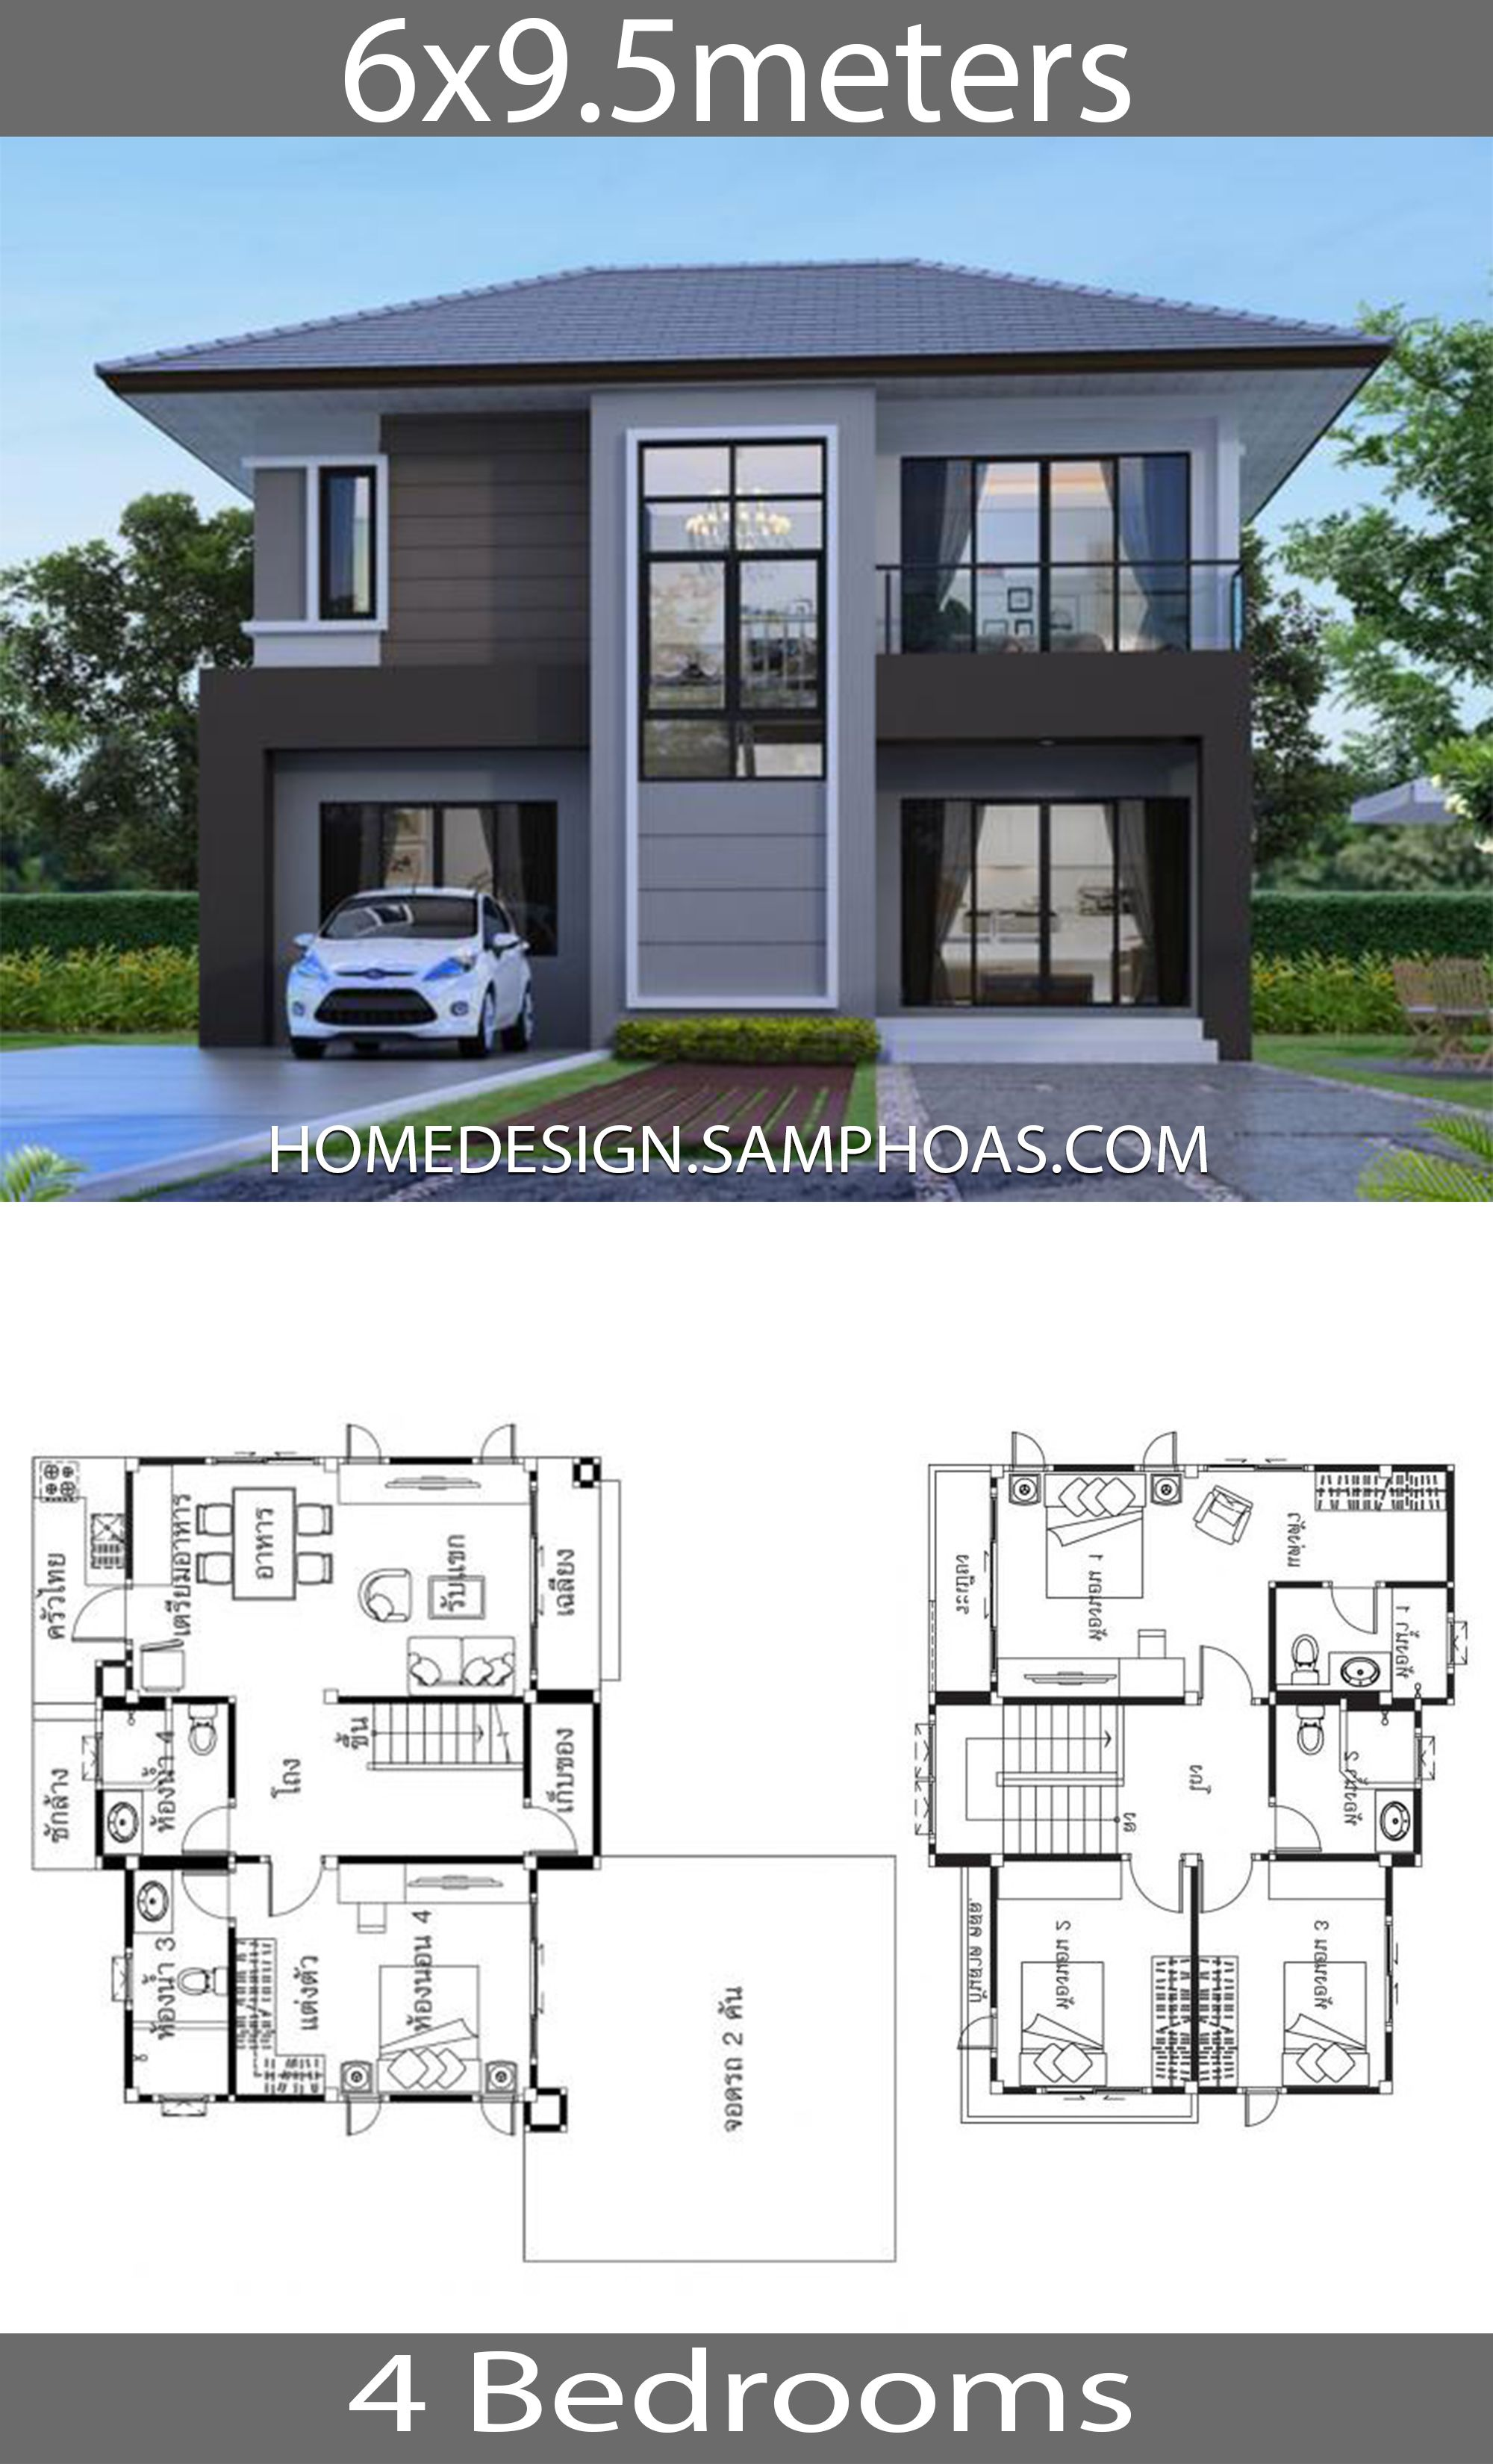 20 House Design With Layout Plans You Wish To See House Plans 3d Arsitektur Rumah Arsitektur Arsitektur Modern